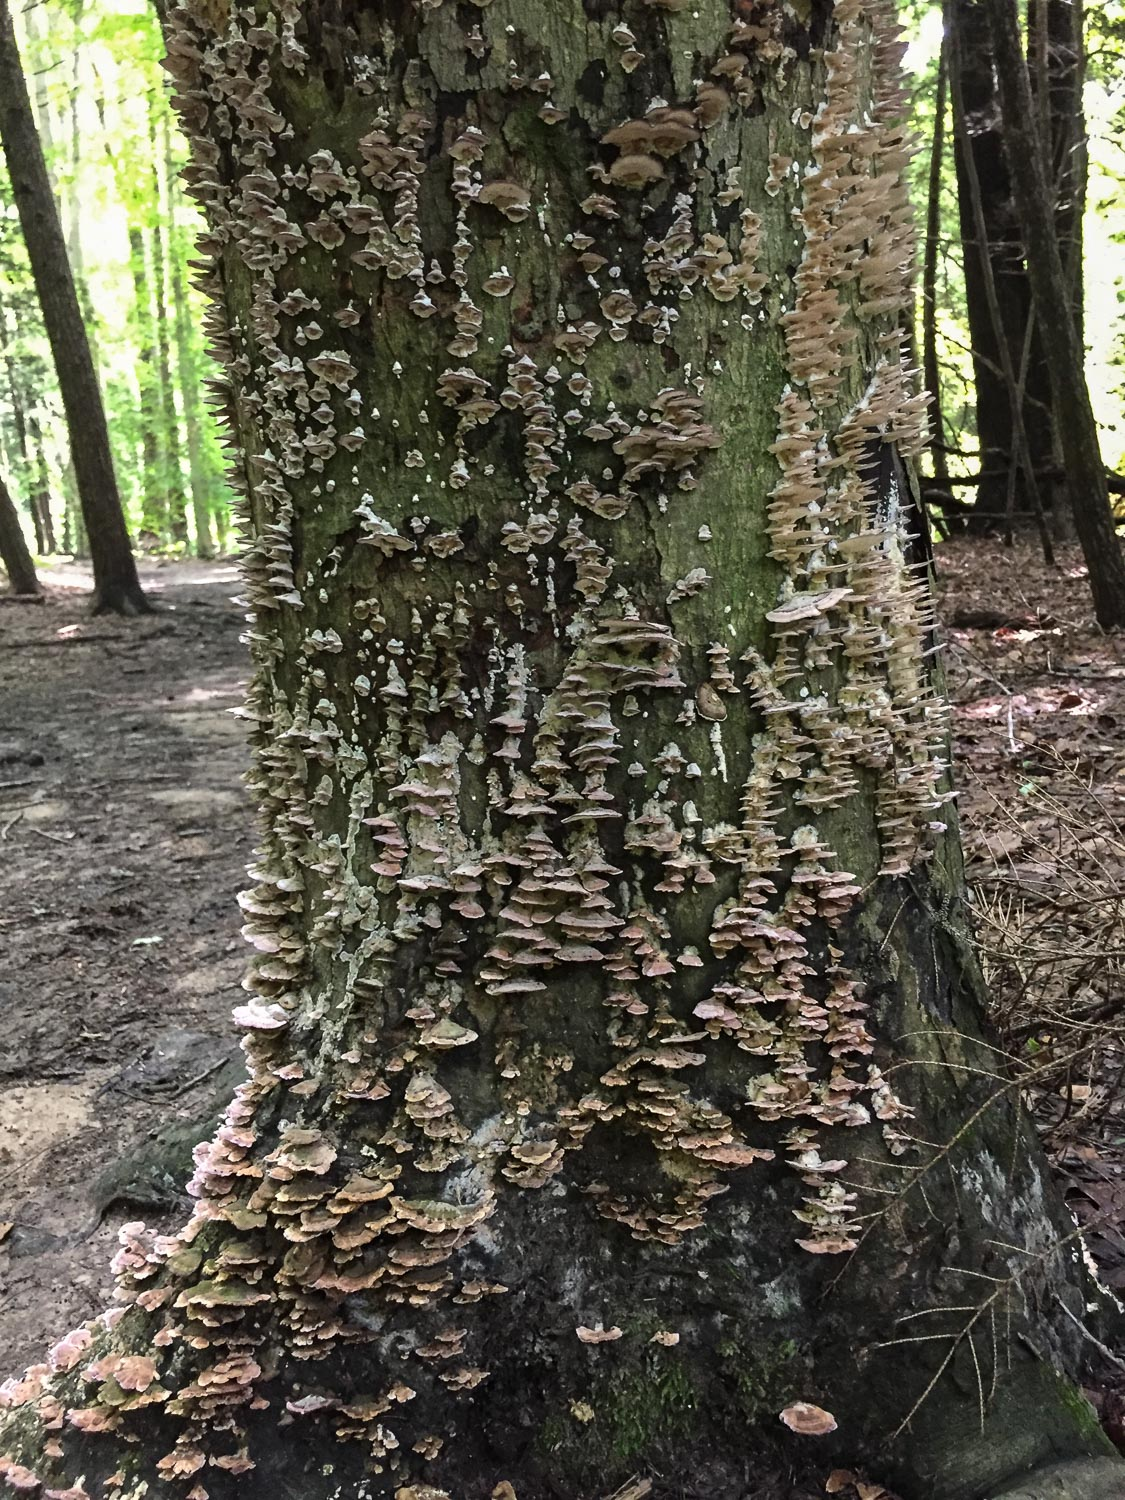 Mushrooms at Mohican State Park, Ohio